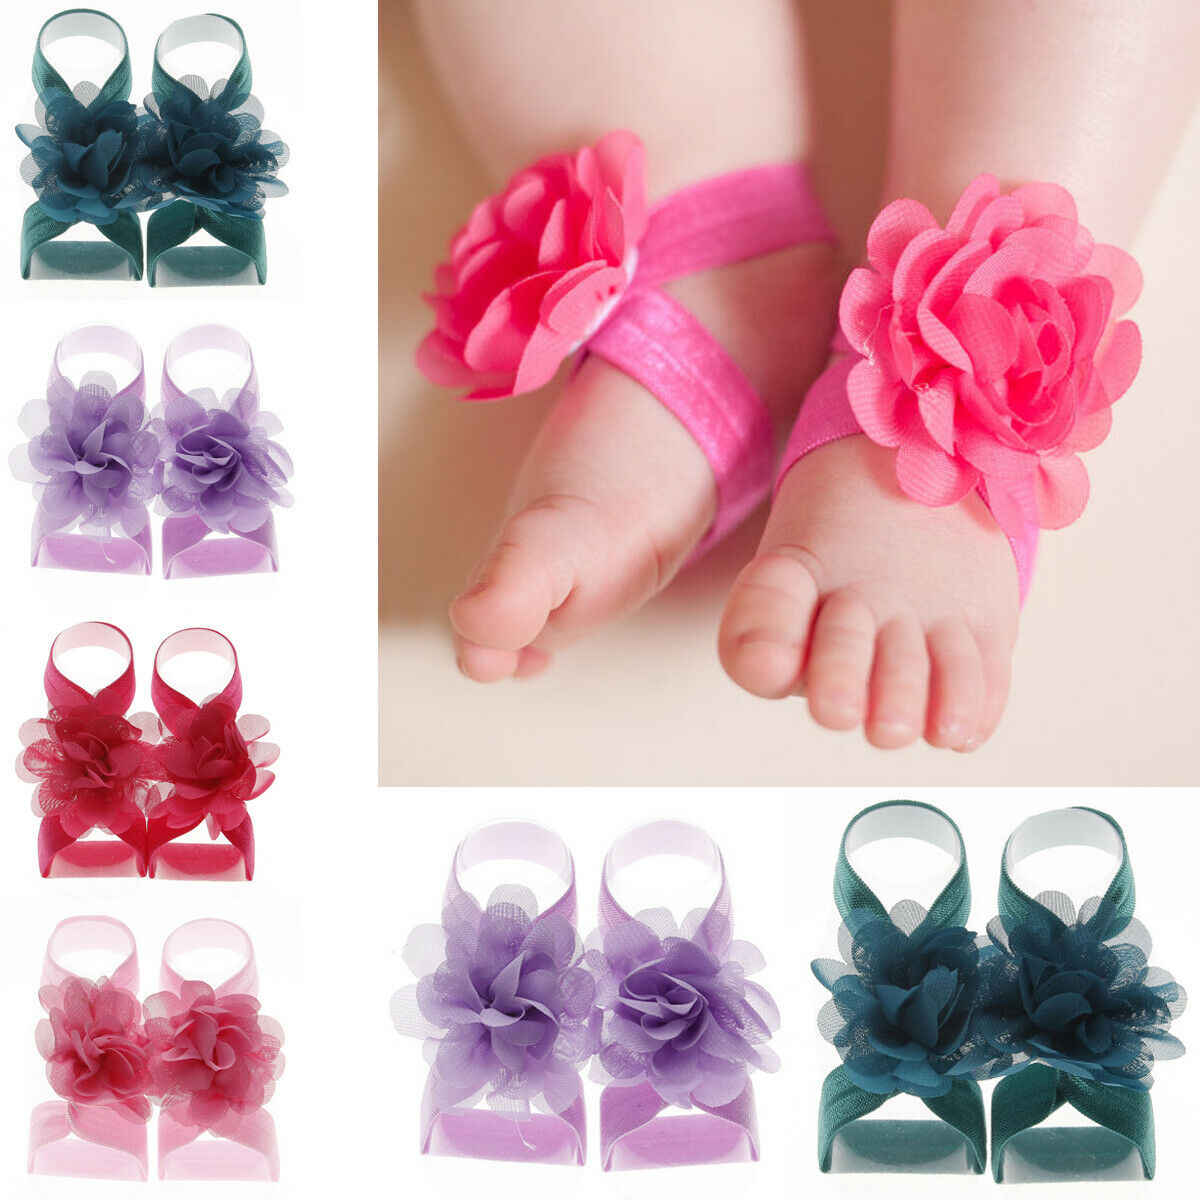 2019 New 1 Pairs Baby Girls Rhinestone Wrist Flower Foot Band Barefoot Sandals Shoes Photo Prop Accessories